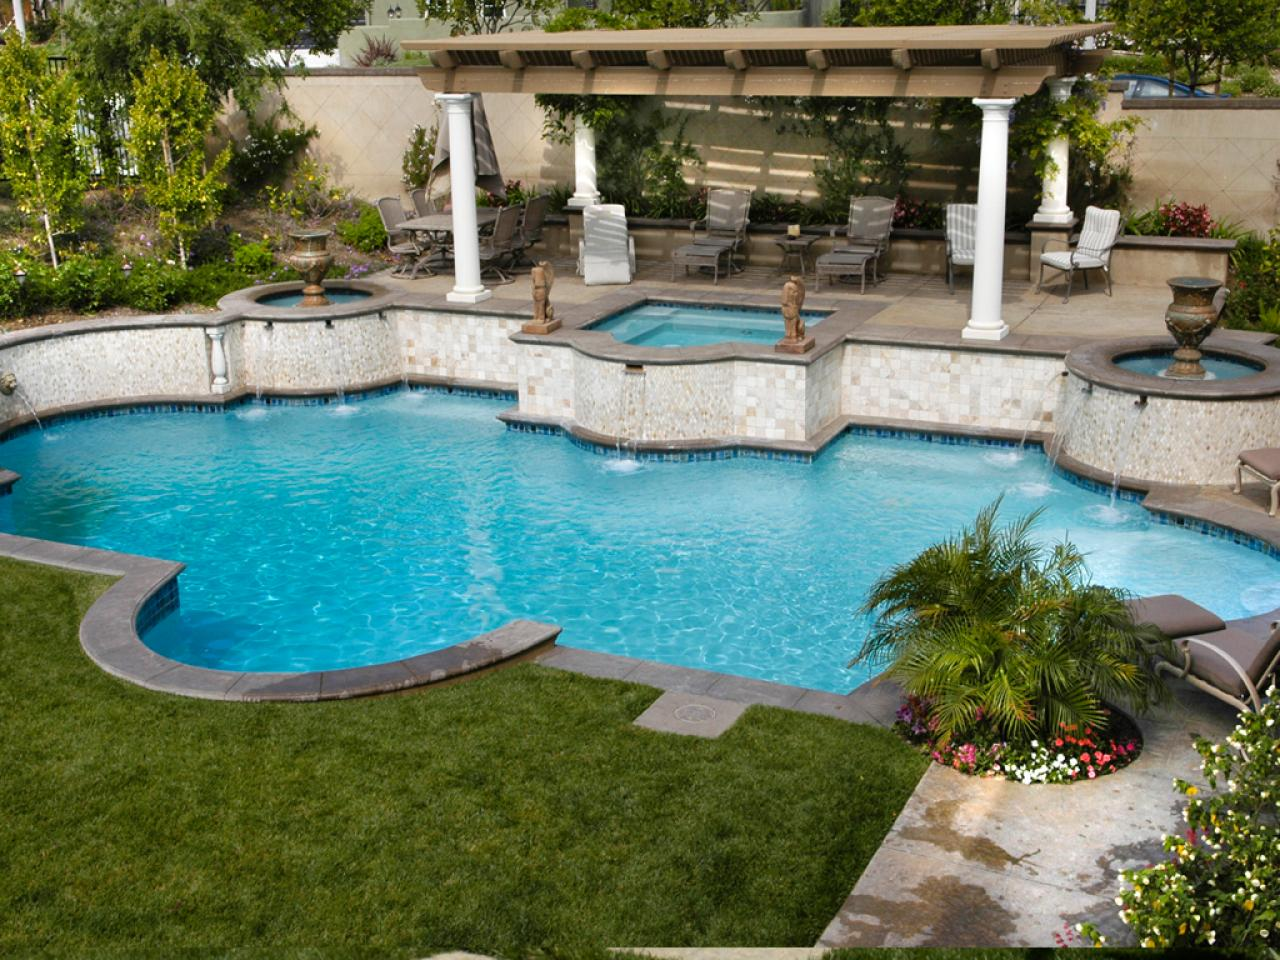 Mediterranean inspired swimming pools outdoor spaces for Pool design by poolside